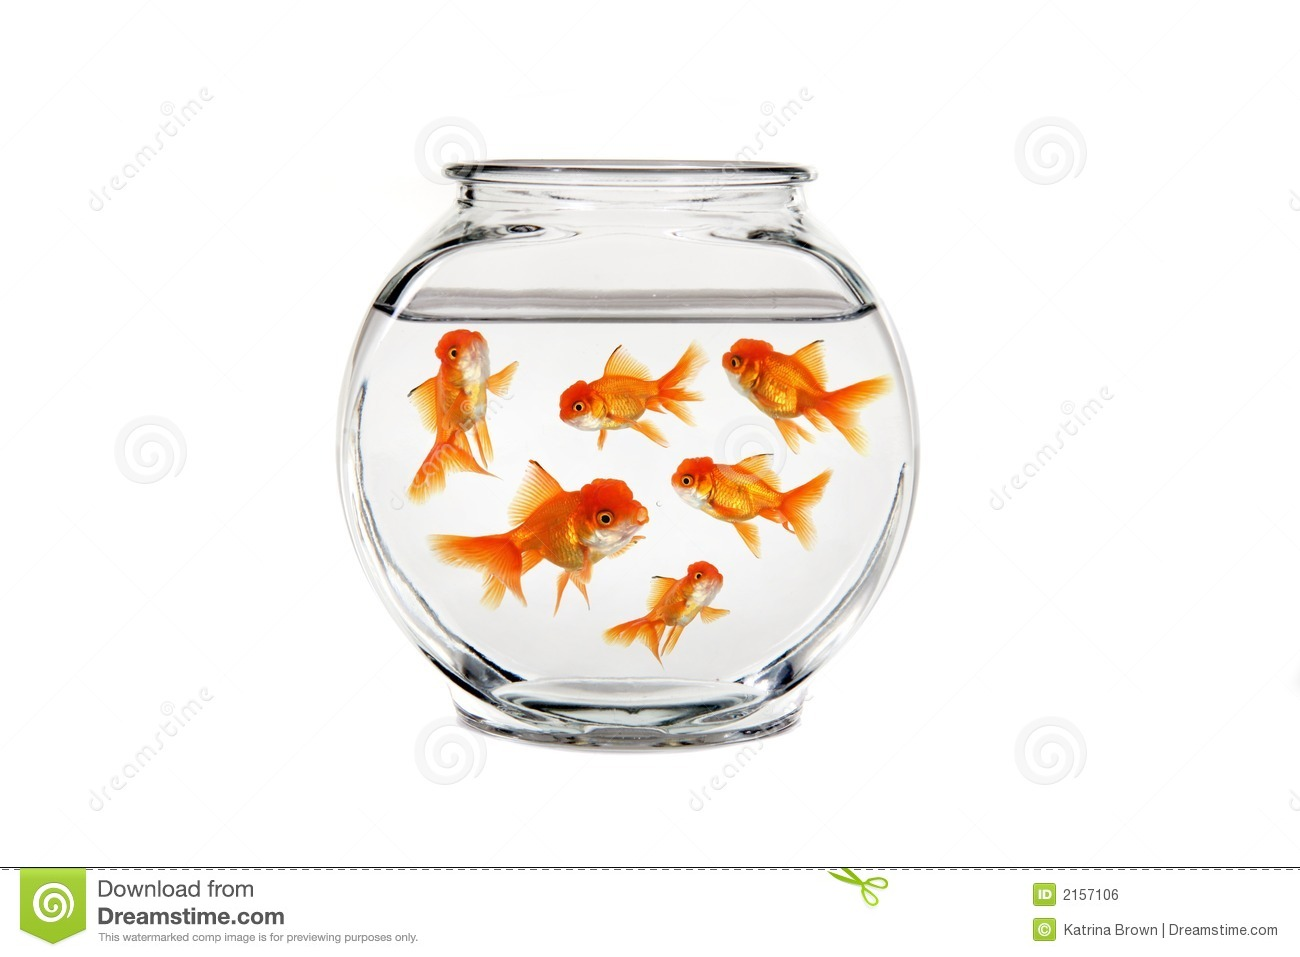 Goldfish bowl stock photo image of image escape freedom for How to make a fish bowl